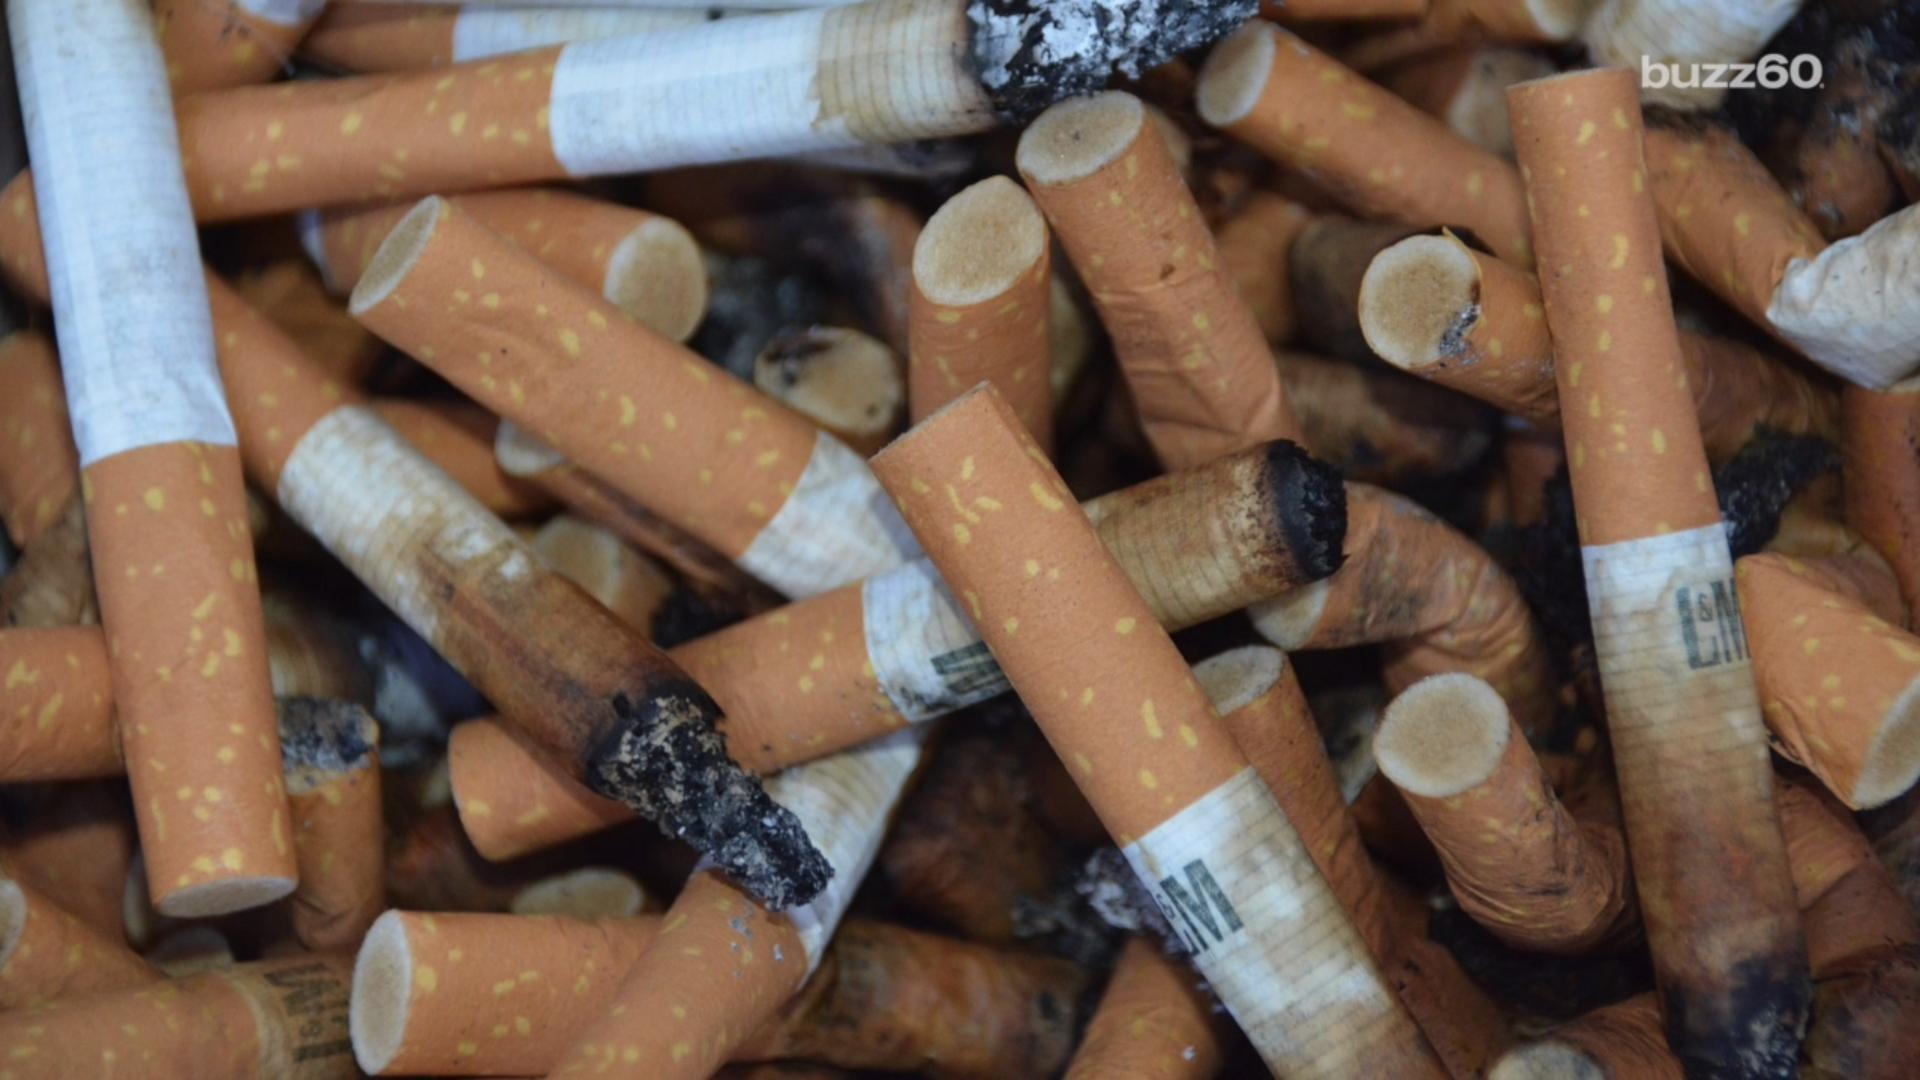 Number of Smokers Hits New Low in U.S.